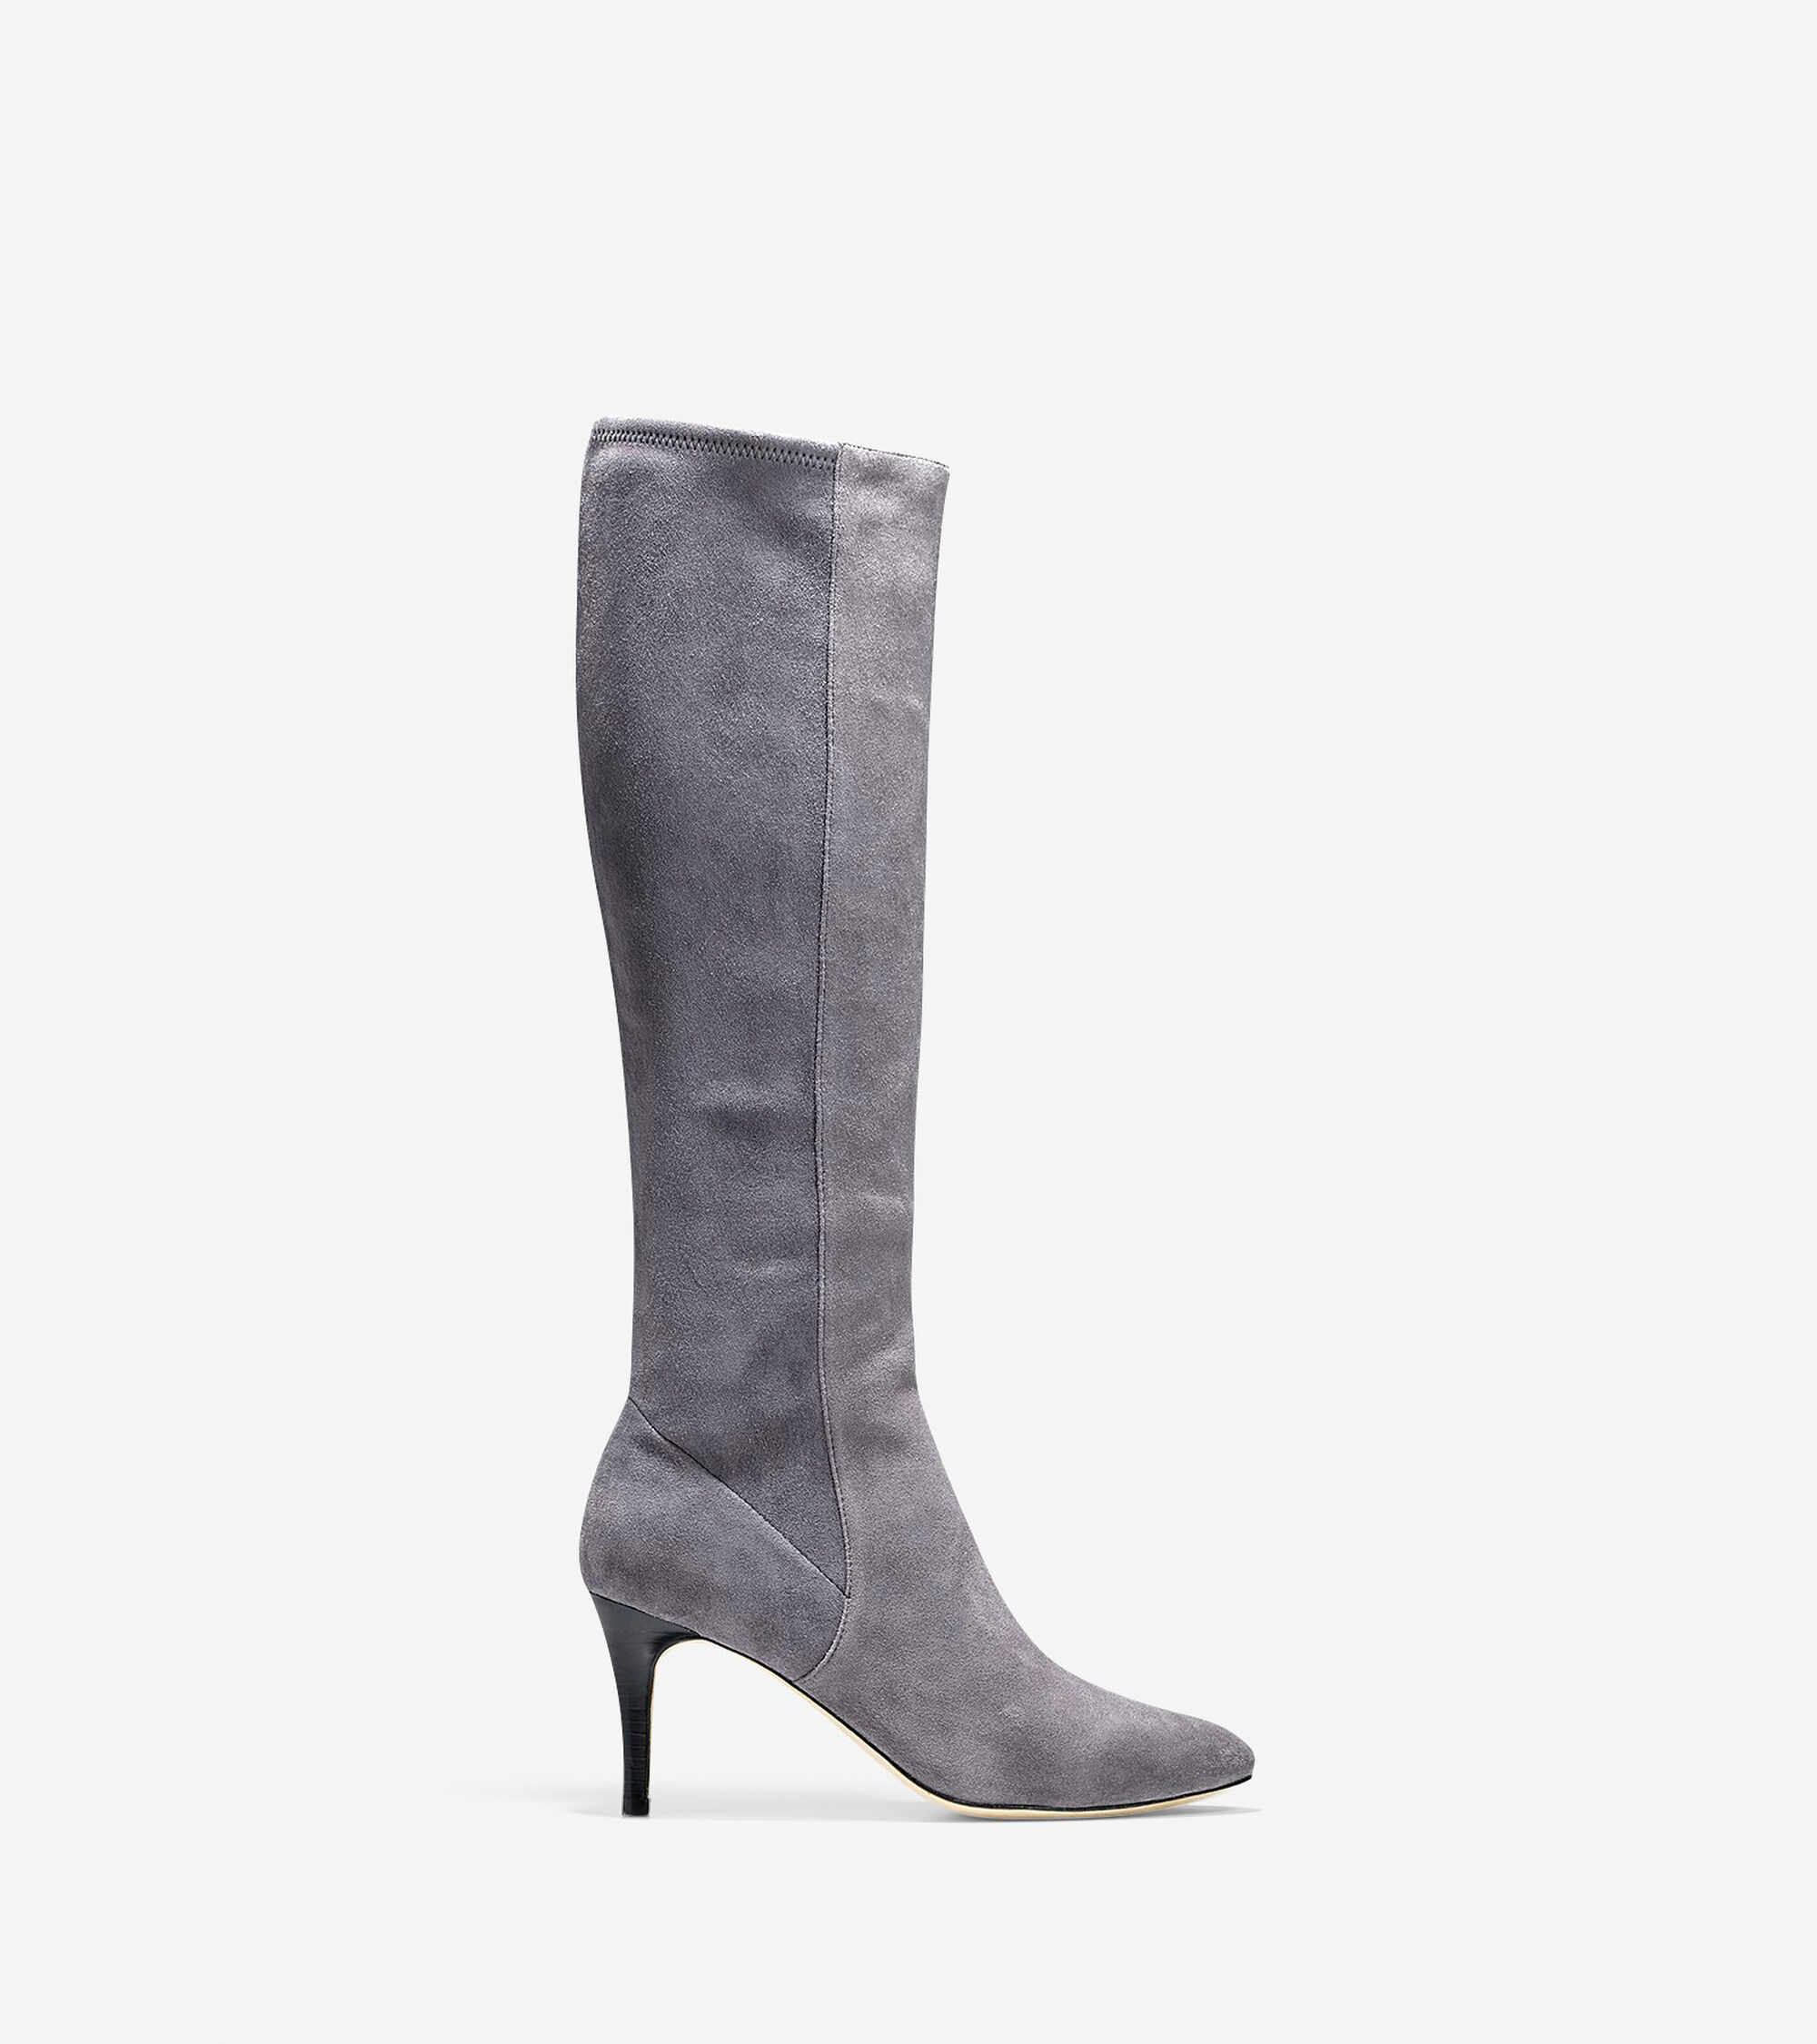 e651bac20ff Barnard Boots (75mm) in Stormcloud Suede